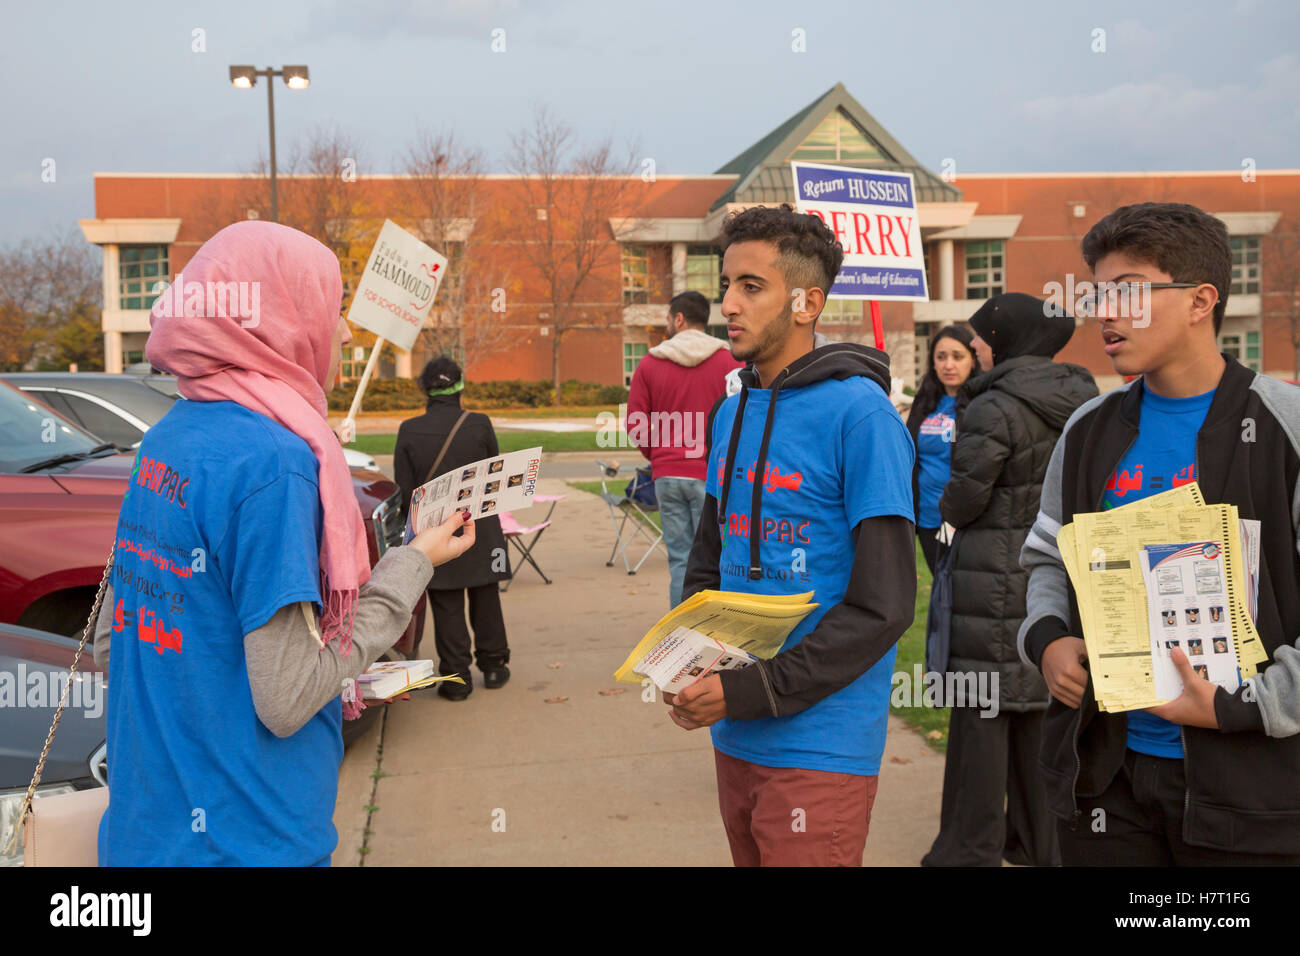 Dearborn, United States. 08th Nov, 2016. Dearborn, Michigan - 8 November 2016 - Young members of the American Arab - Stock Image